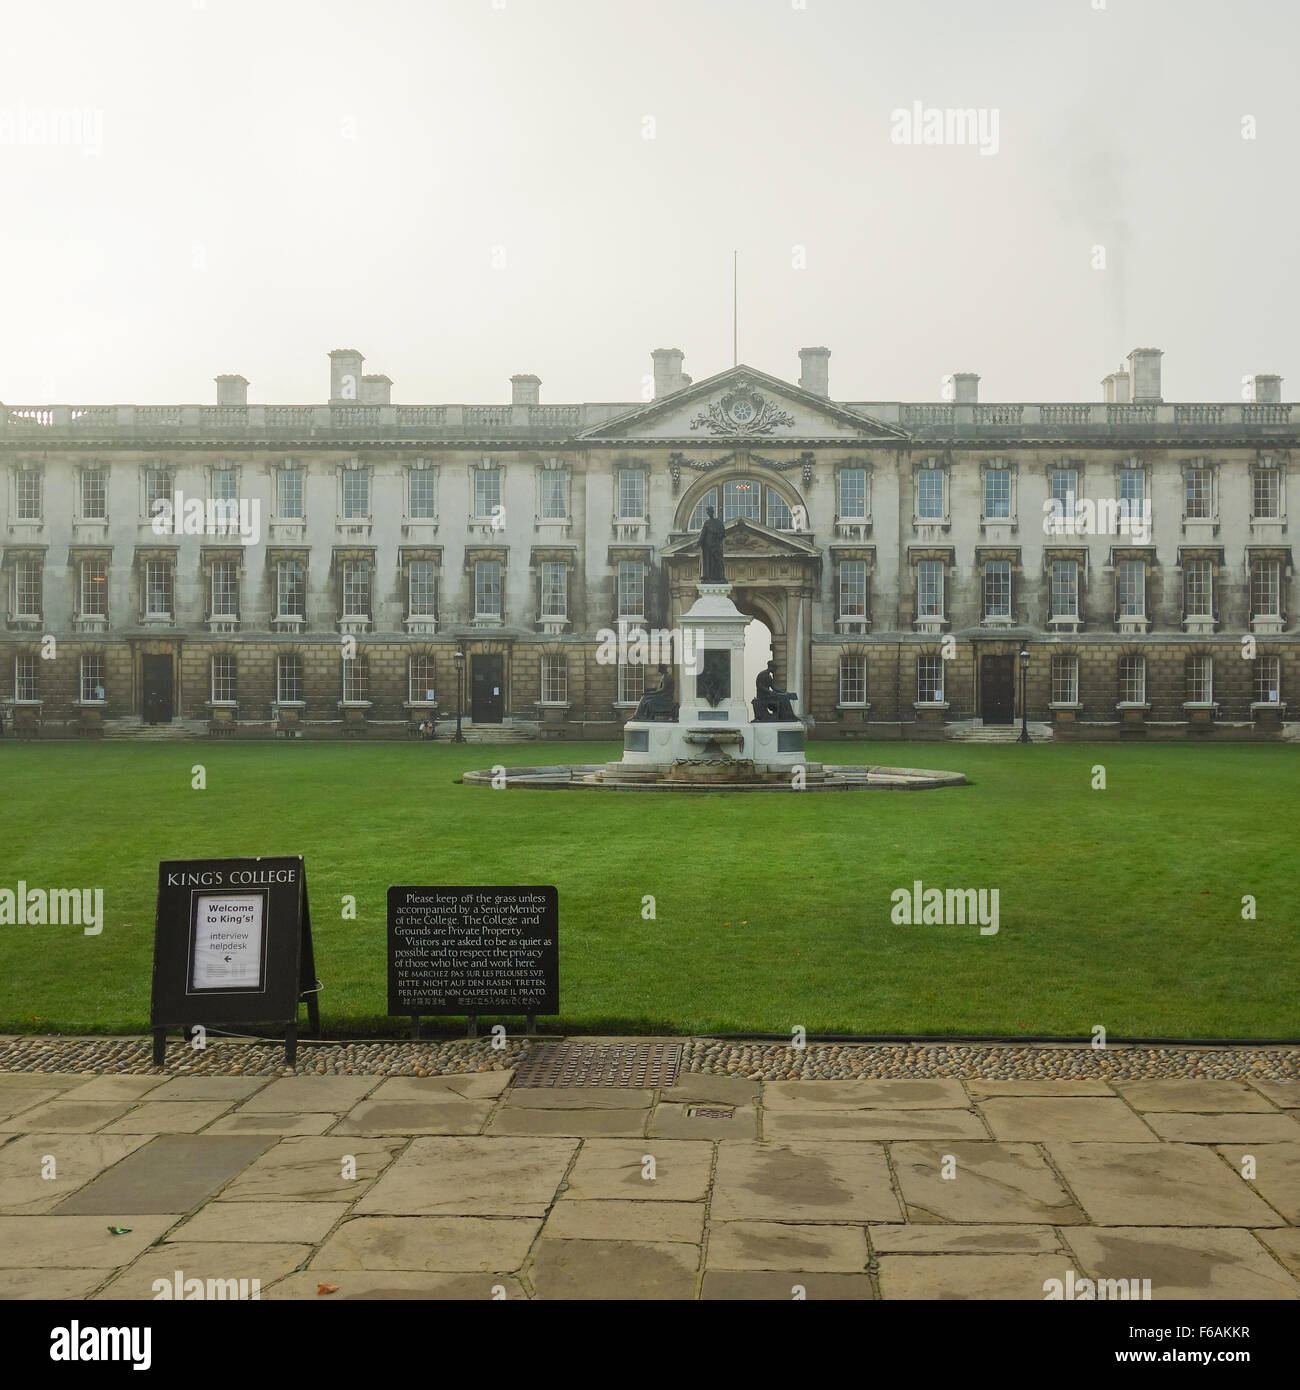 Kings College Cambridge University of Cambridge - sign directing students during the interview period in December - Stock Image